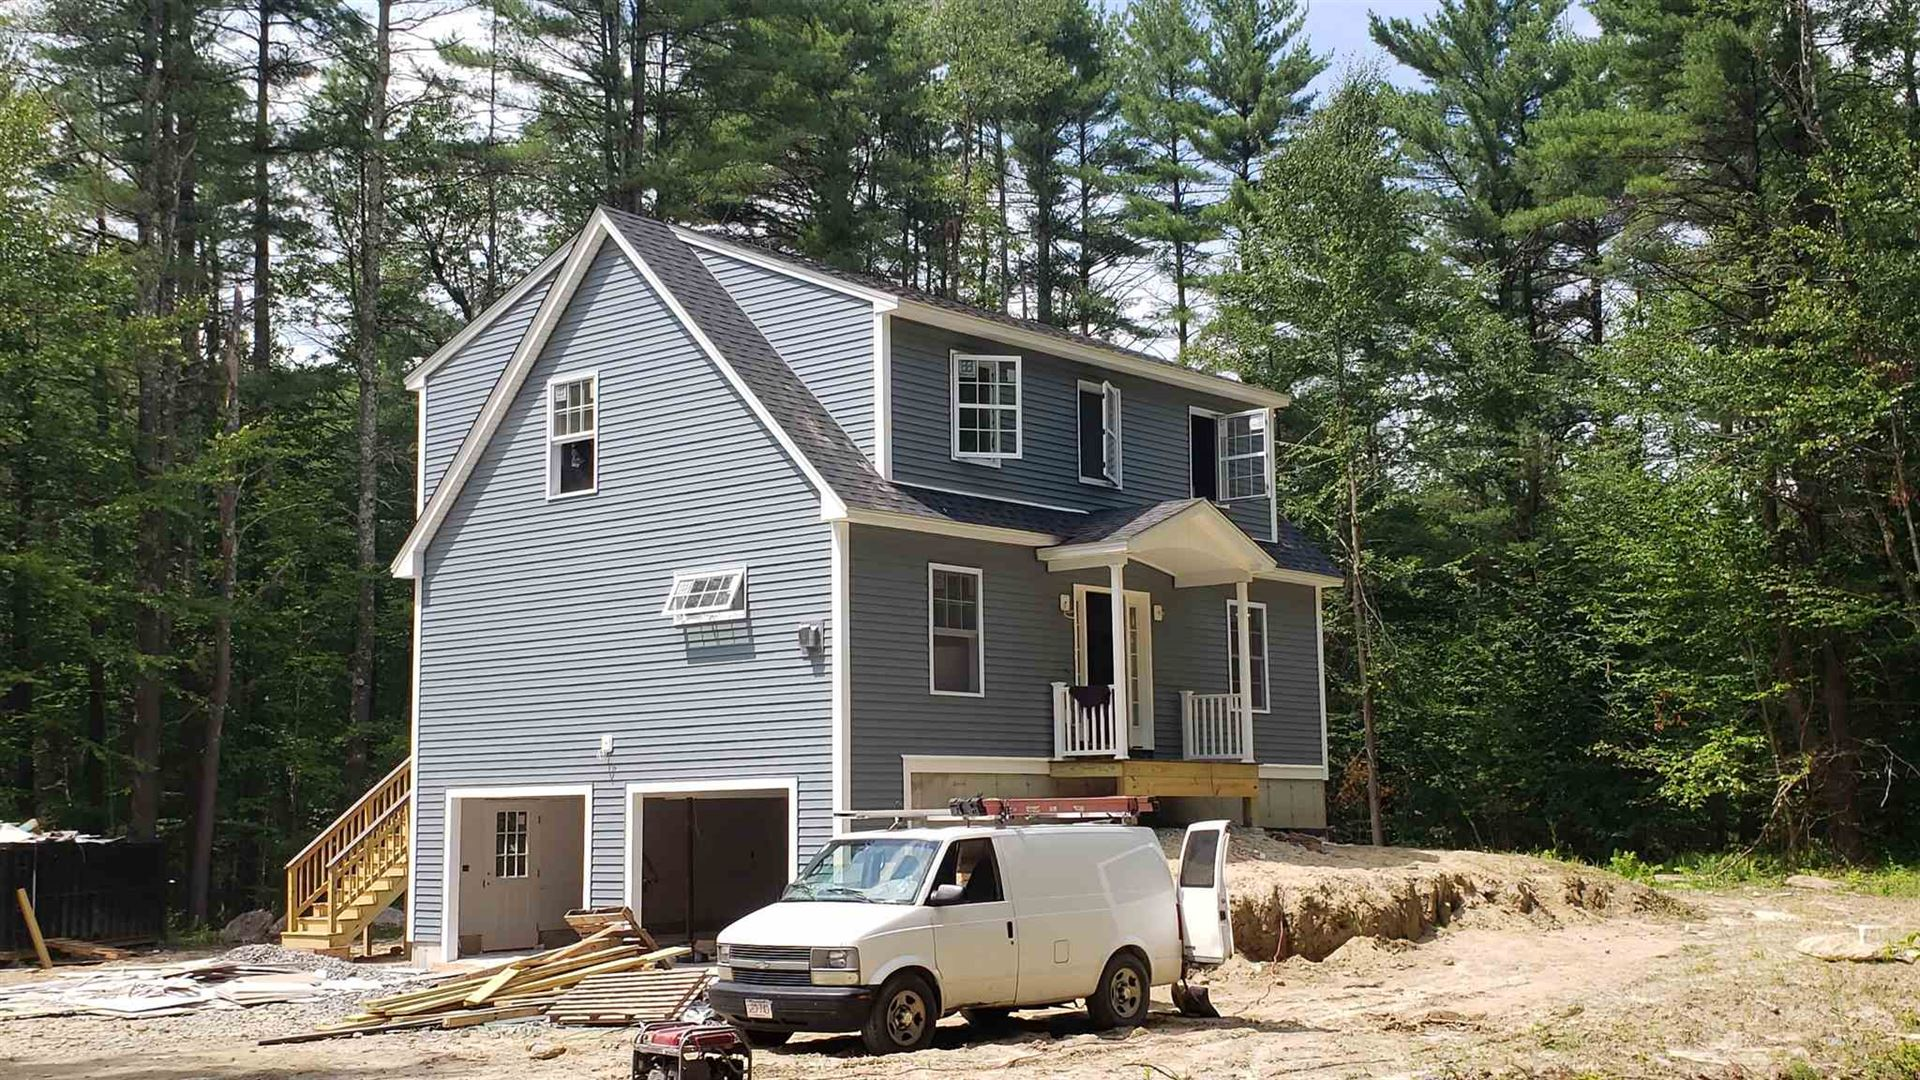 24-9 Lot Haven Hill Road, Rochester, NH 03867 - MLS#: 4800299